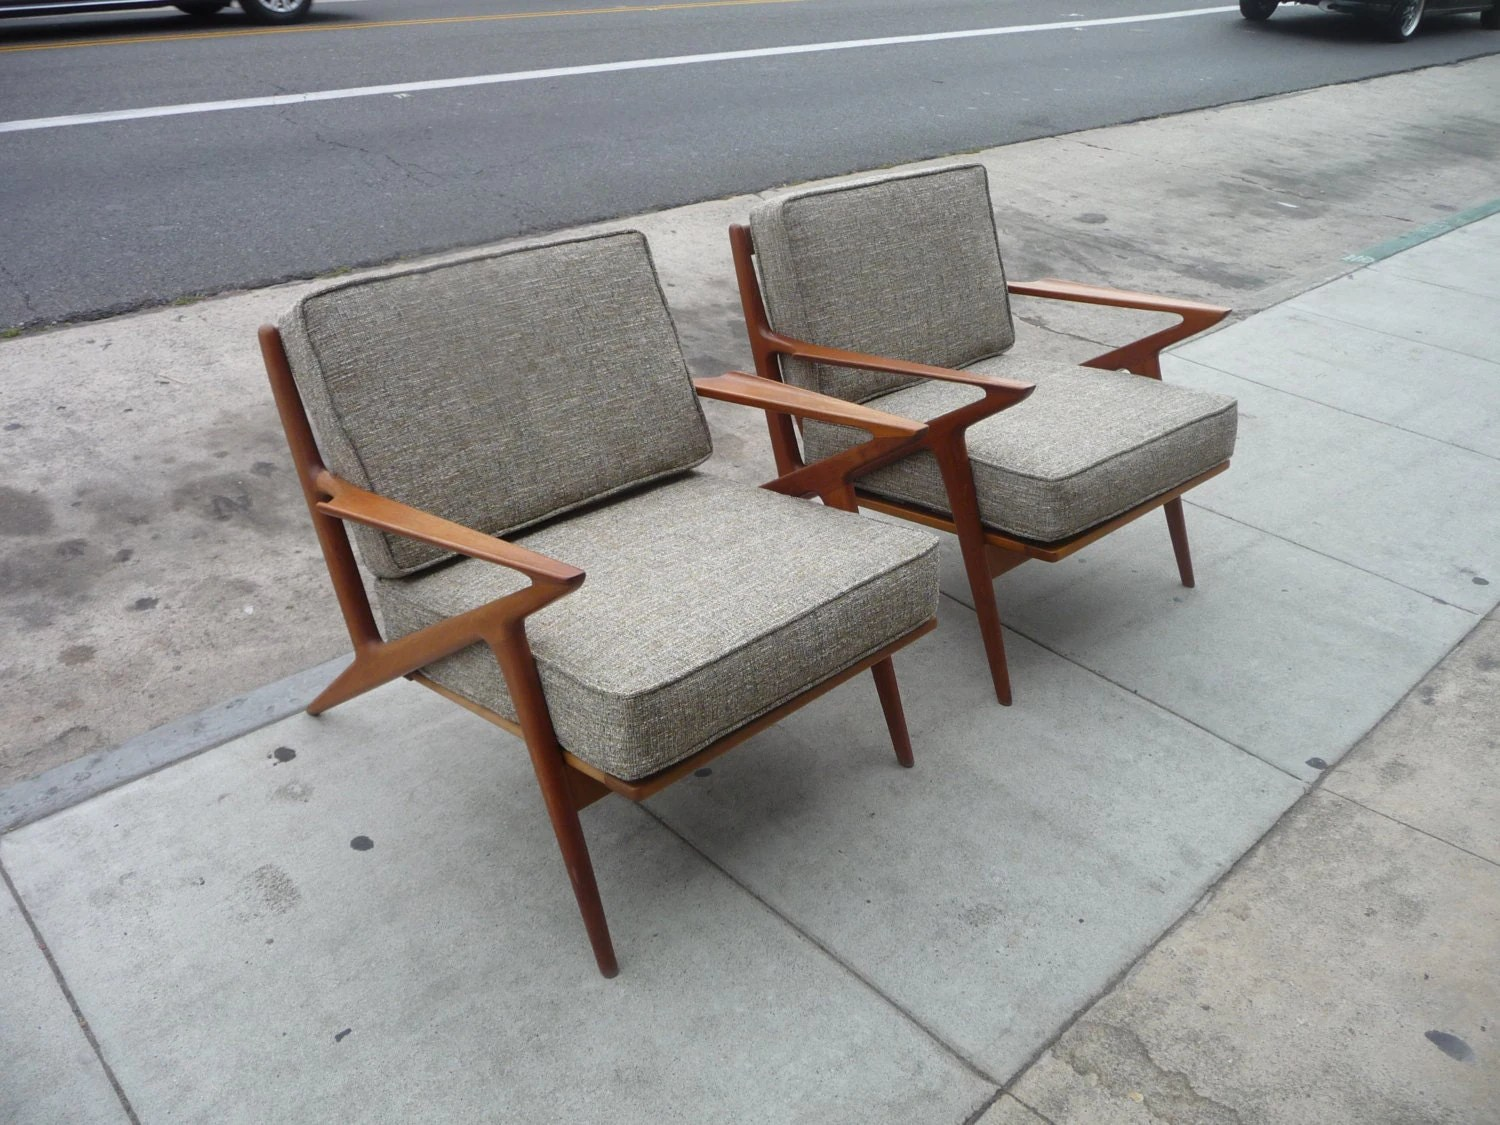 z chair mid century suvs with second row captains chairs pair of selig modern danish